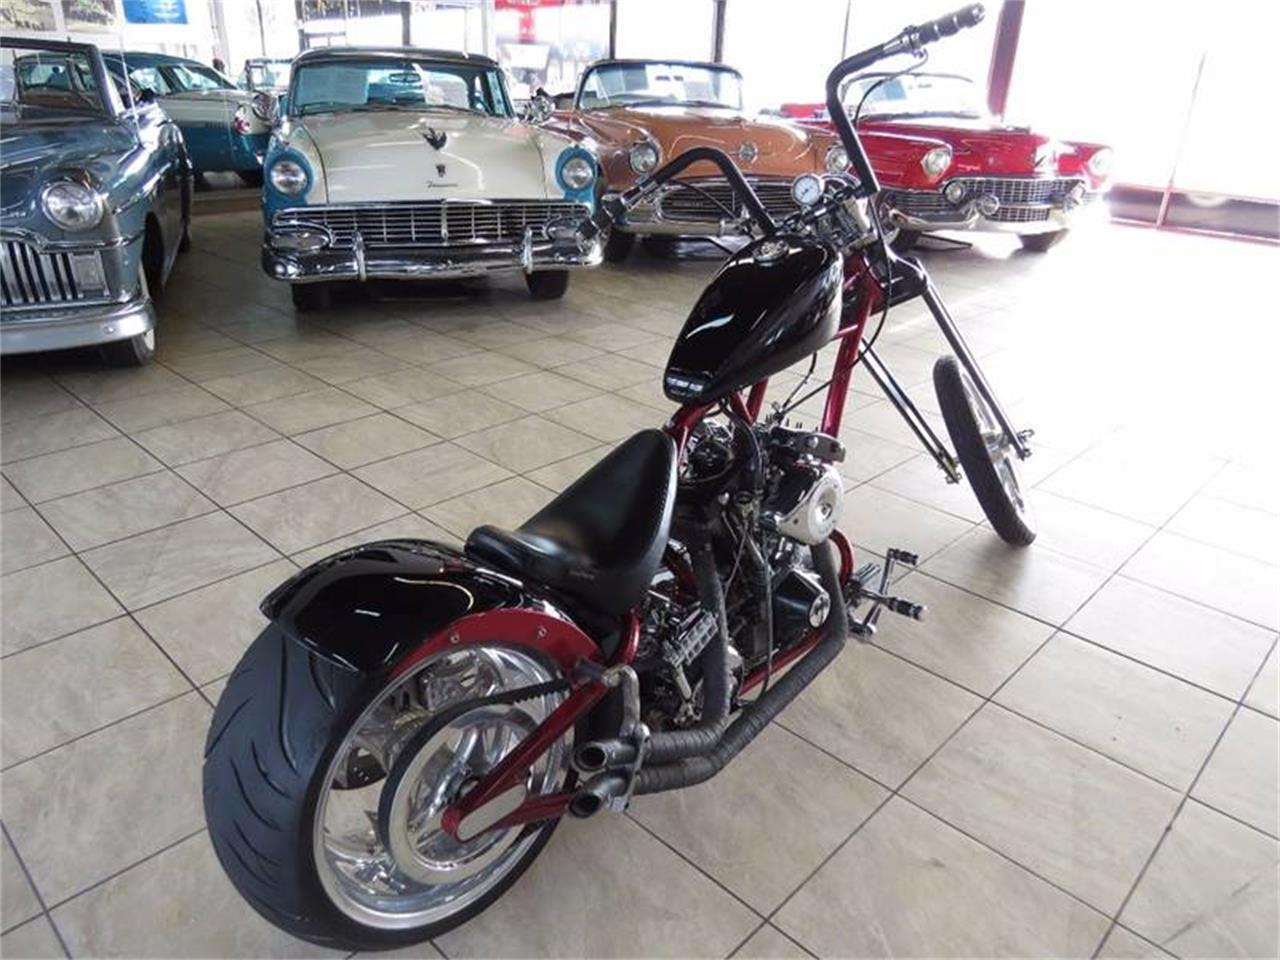 2012 Harley-Davidson Motorcycle for sale in St. Charles, IL – photo 10